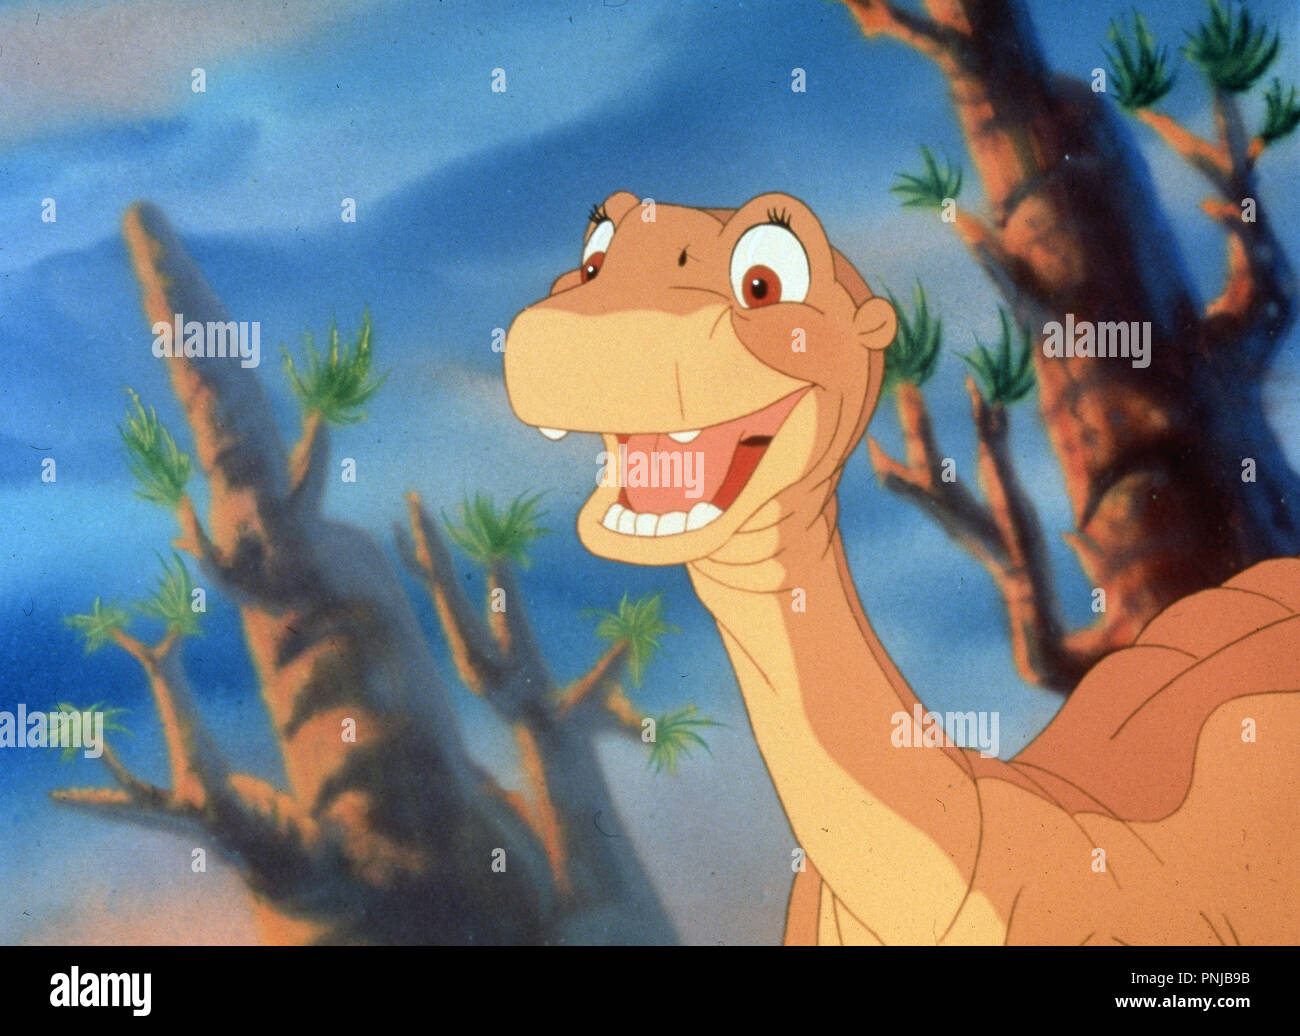 Land Before Time Stock Photos & Land Before Time Stock